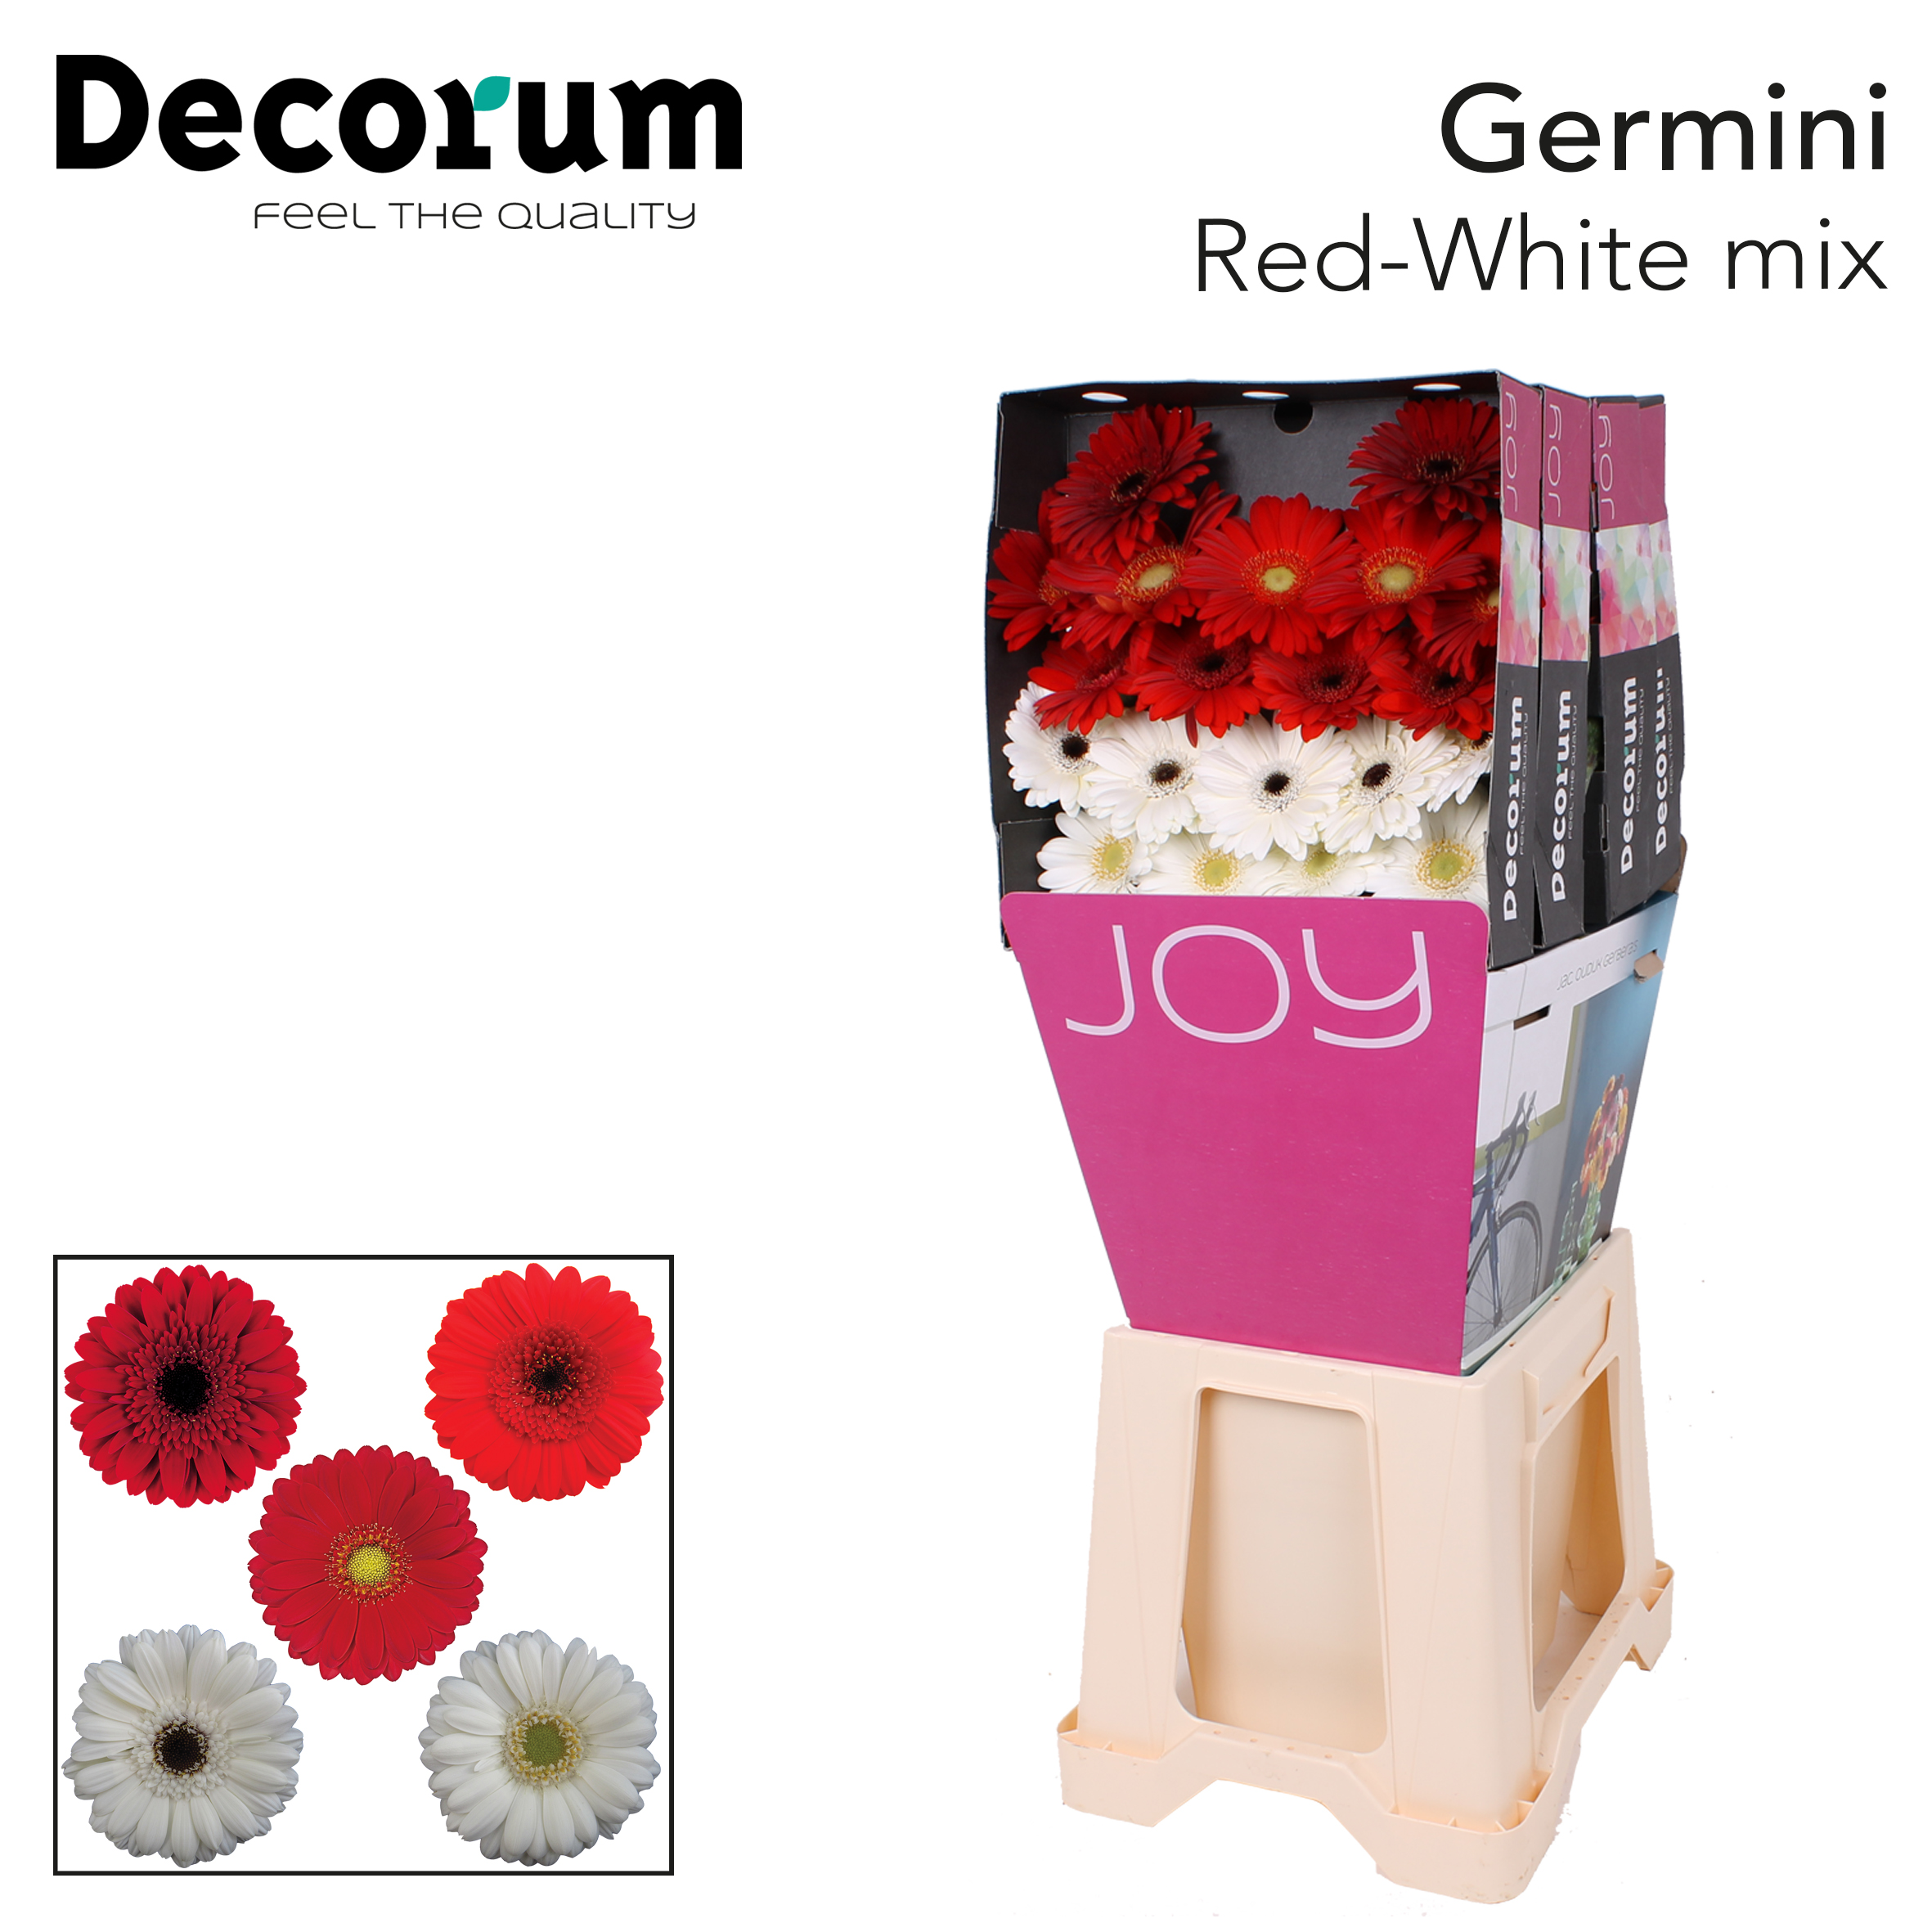 6. Red-White Mix